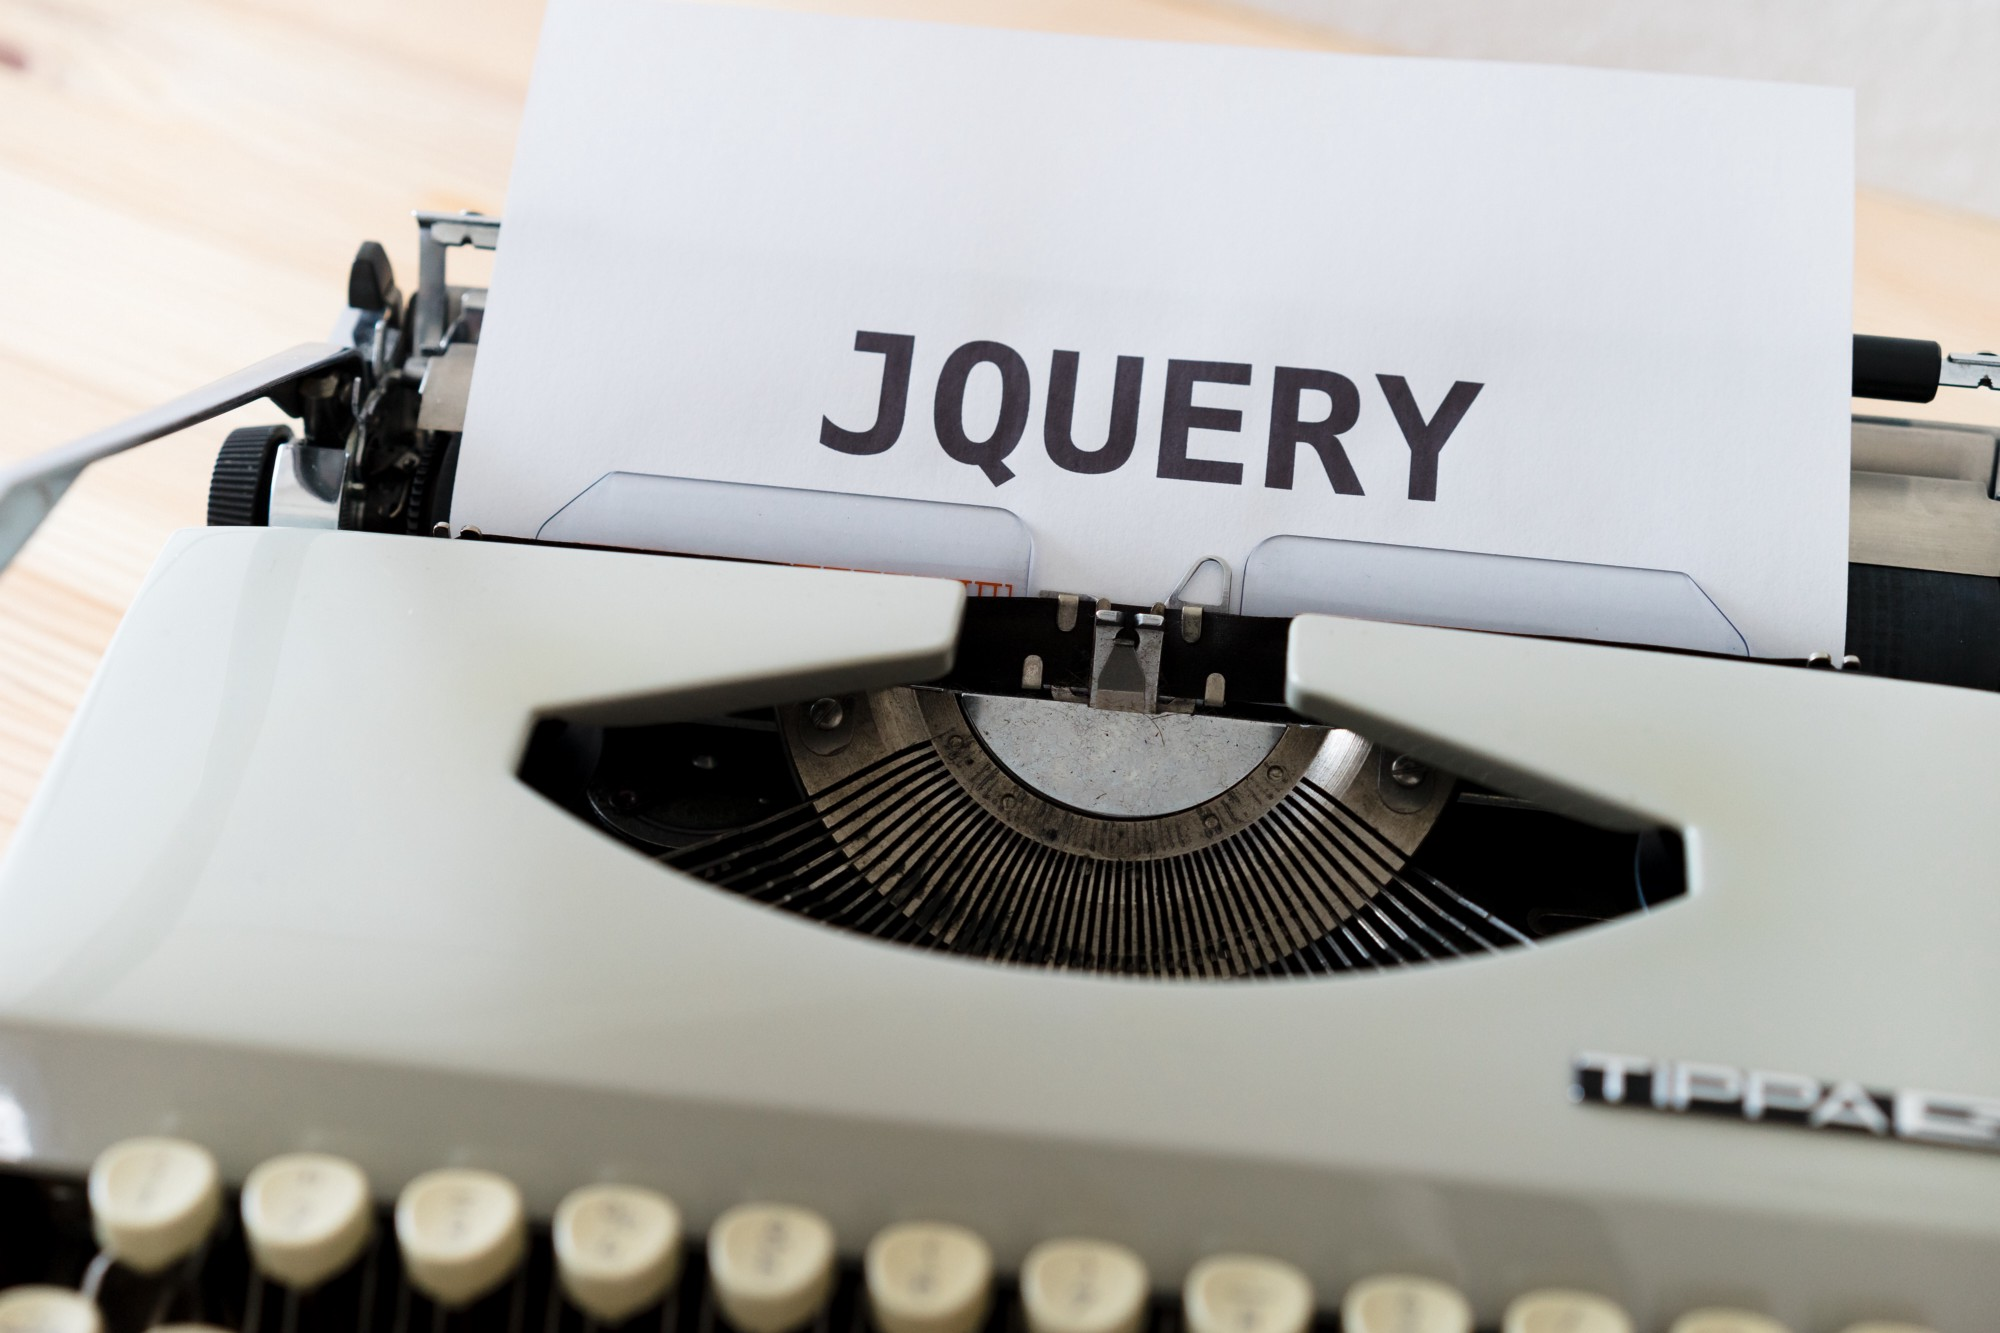 the picture is about jQuery